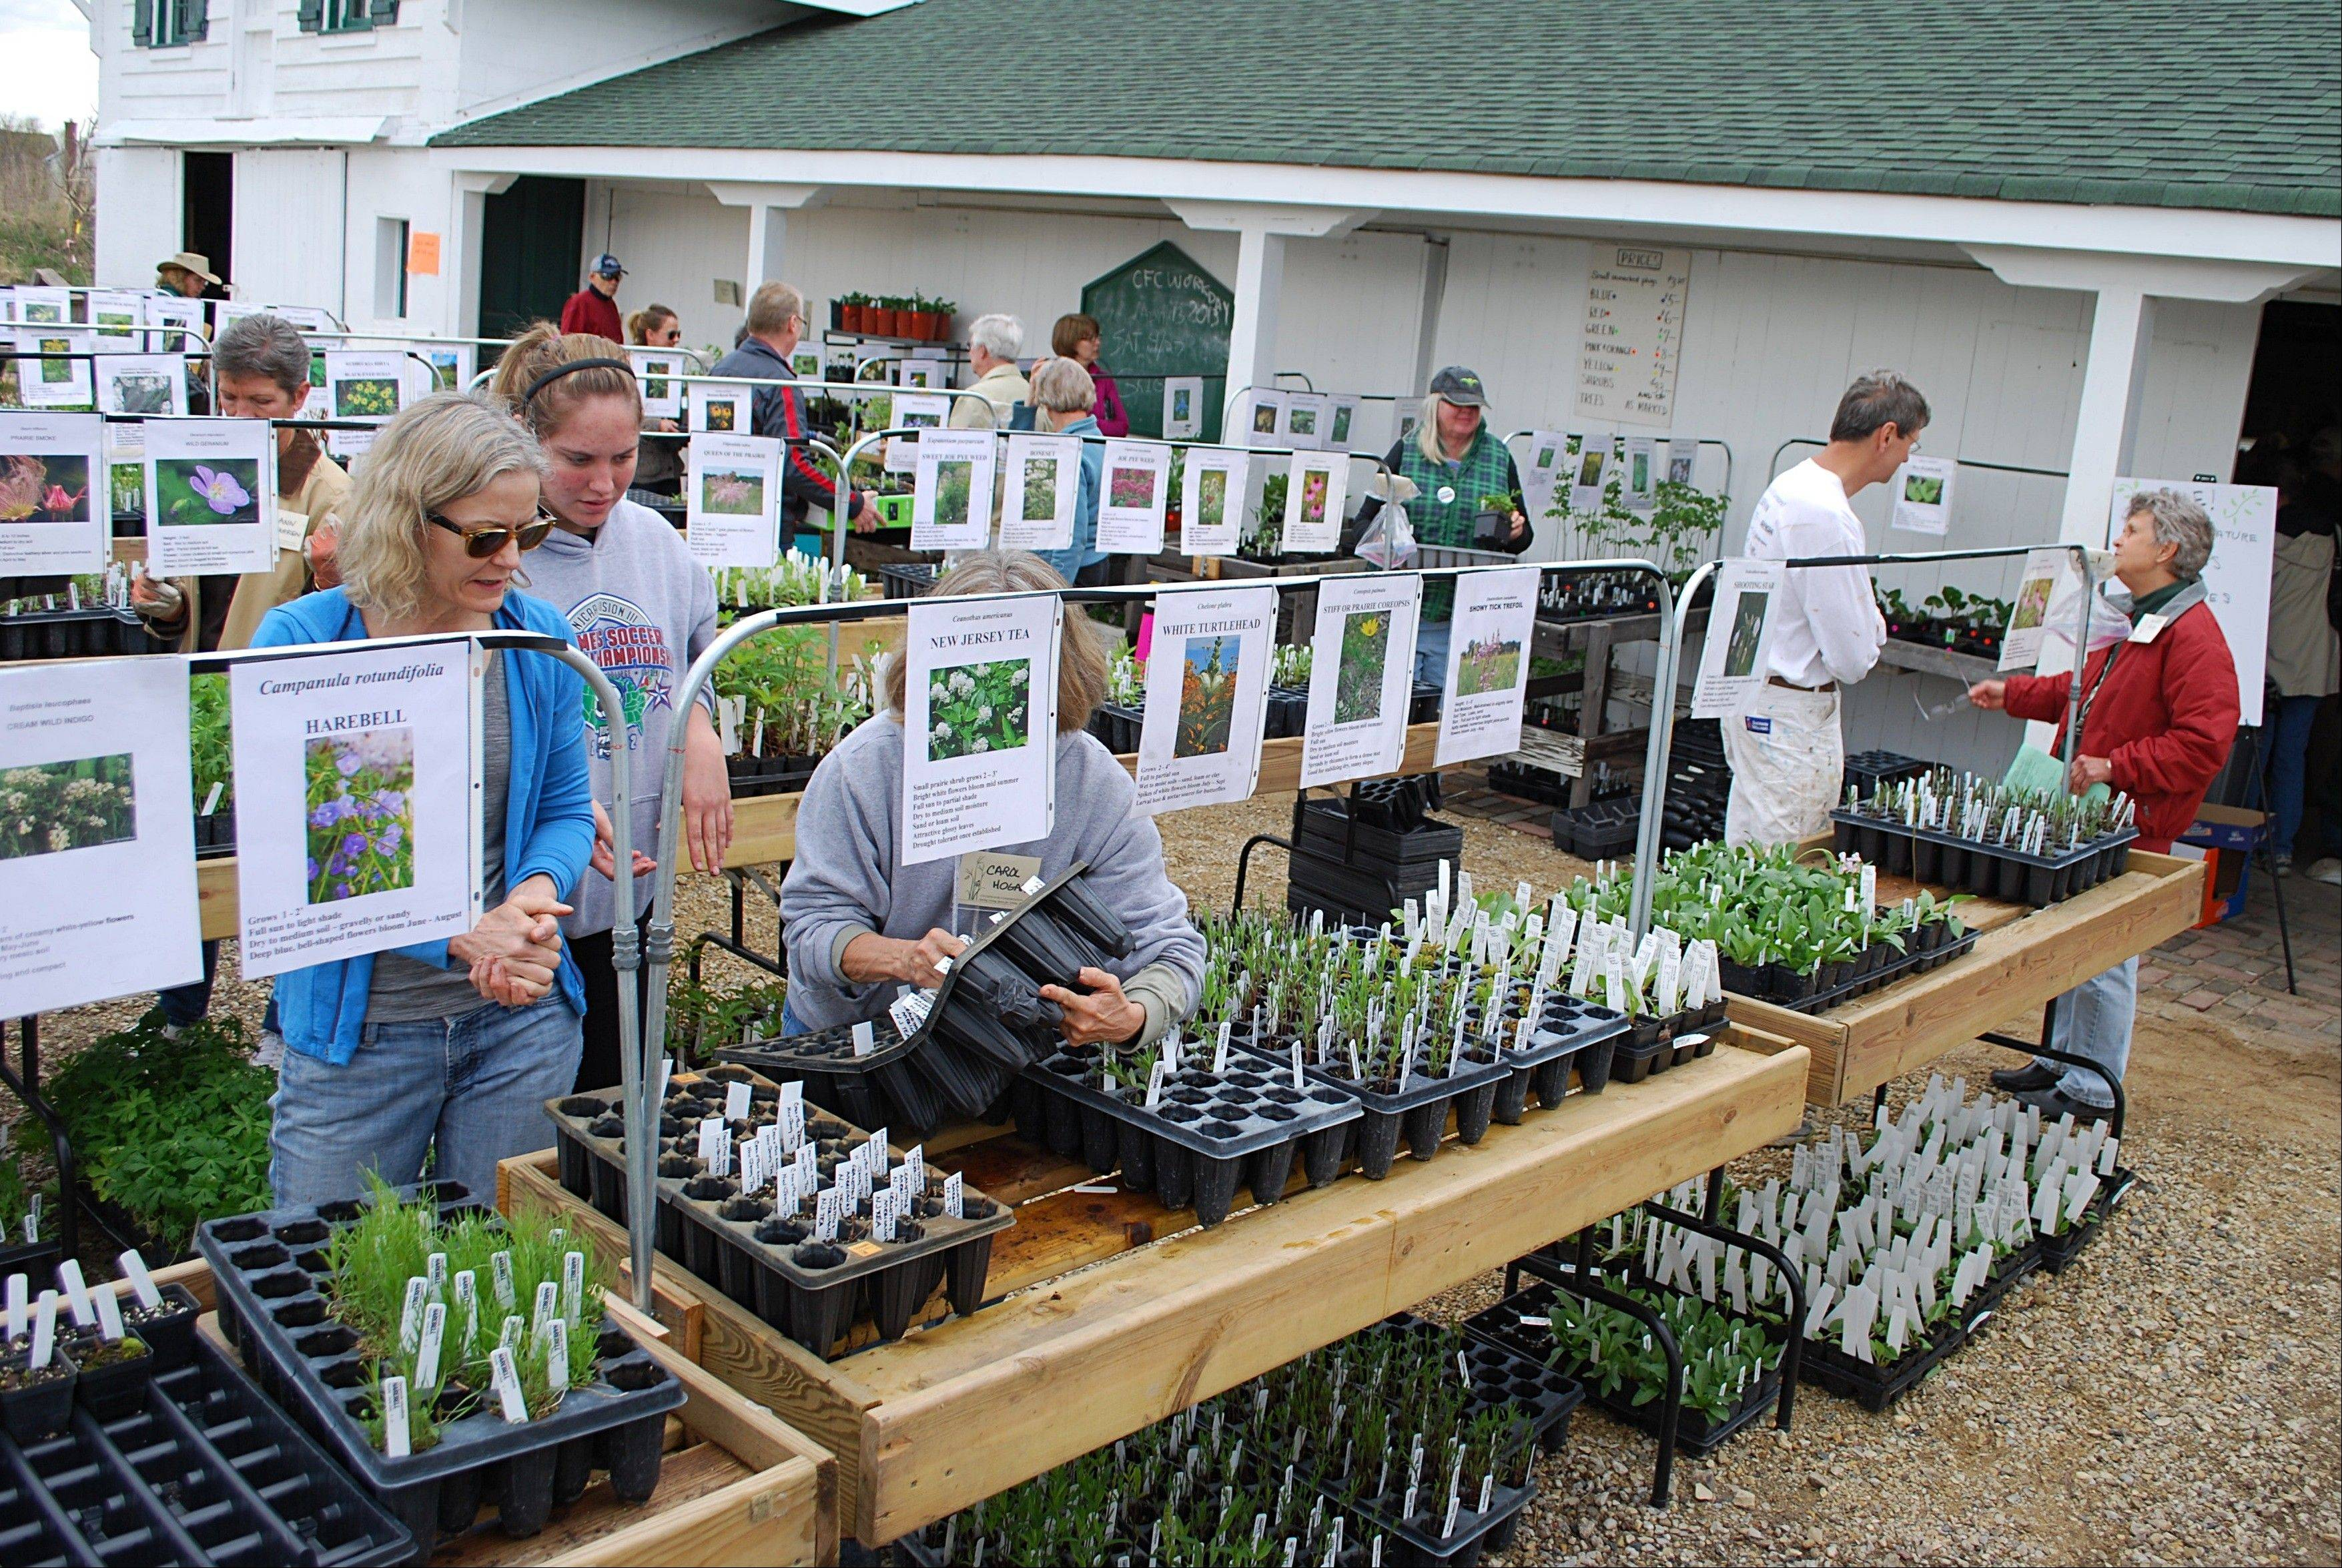 Every June, the CFC holds its native plant sale to raise money and perpetuate native species in area gardens